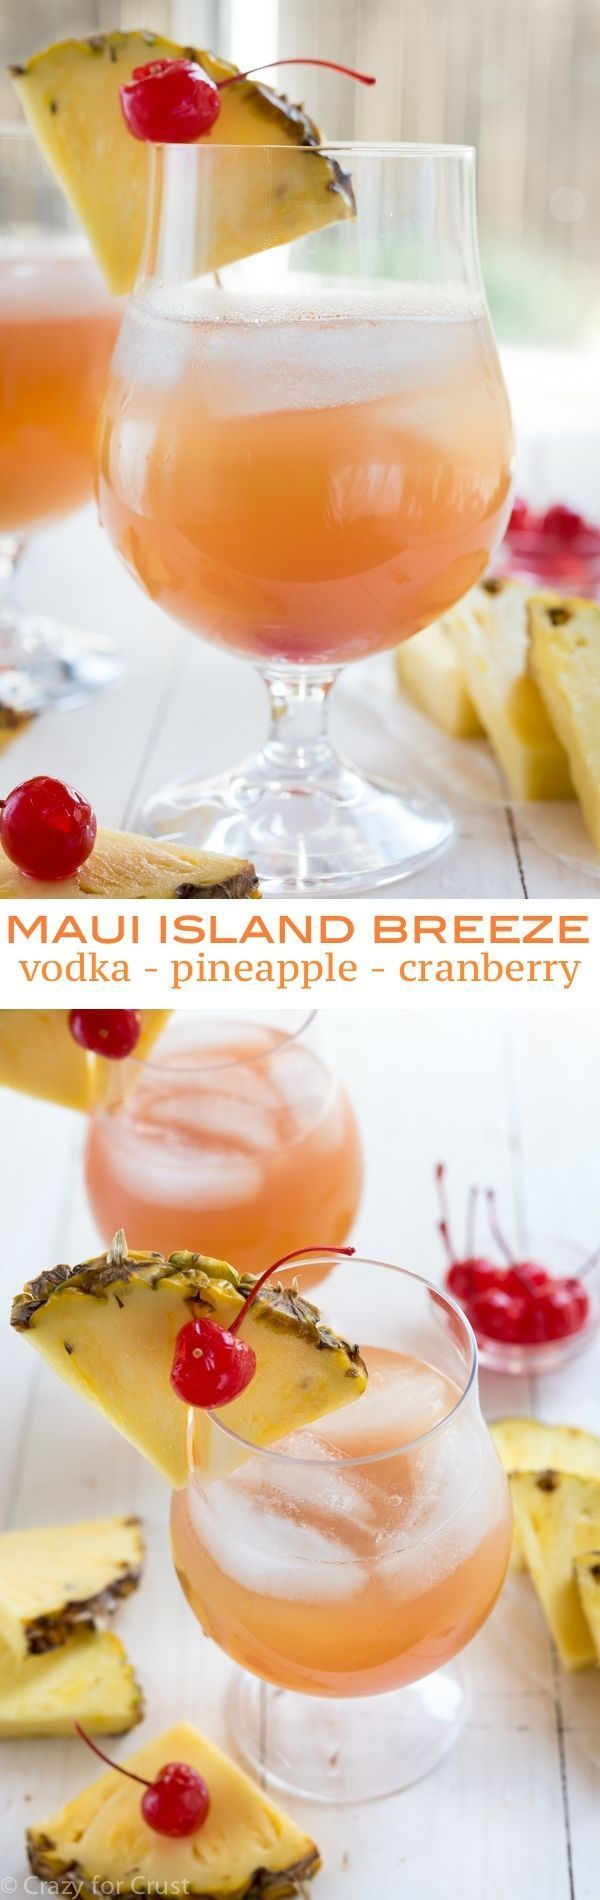 I had this Island Breeze #Cocktail in Maui and couldn't wait to recreate it. It's an easy drink #recipe with pineapple, vodka, and cranberry. Turn it into a punch for a party!